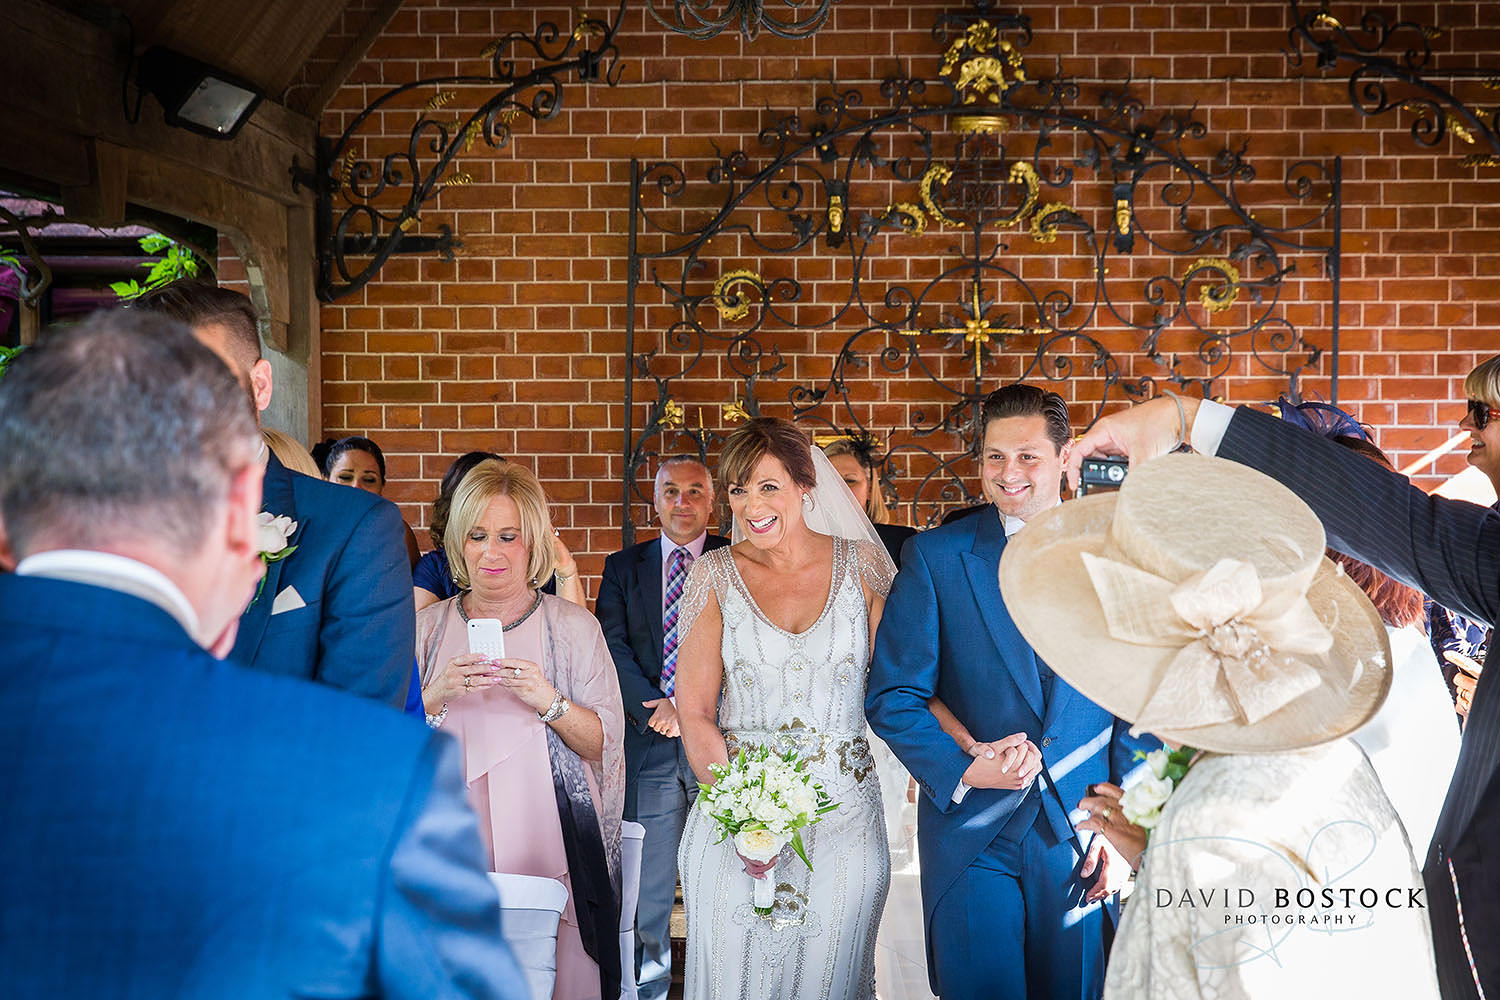 The Dairy Waddesdon wedding photo walking down the aisle